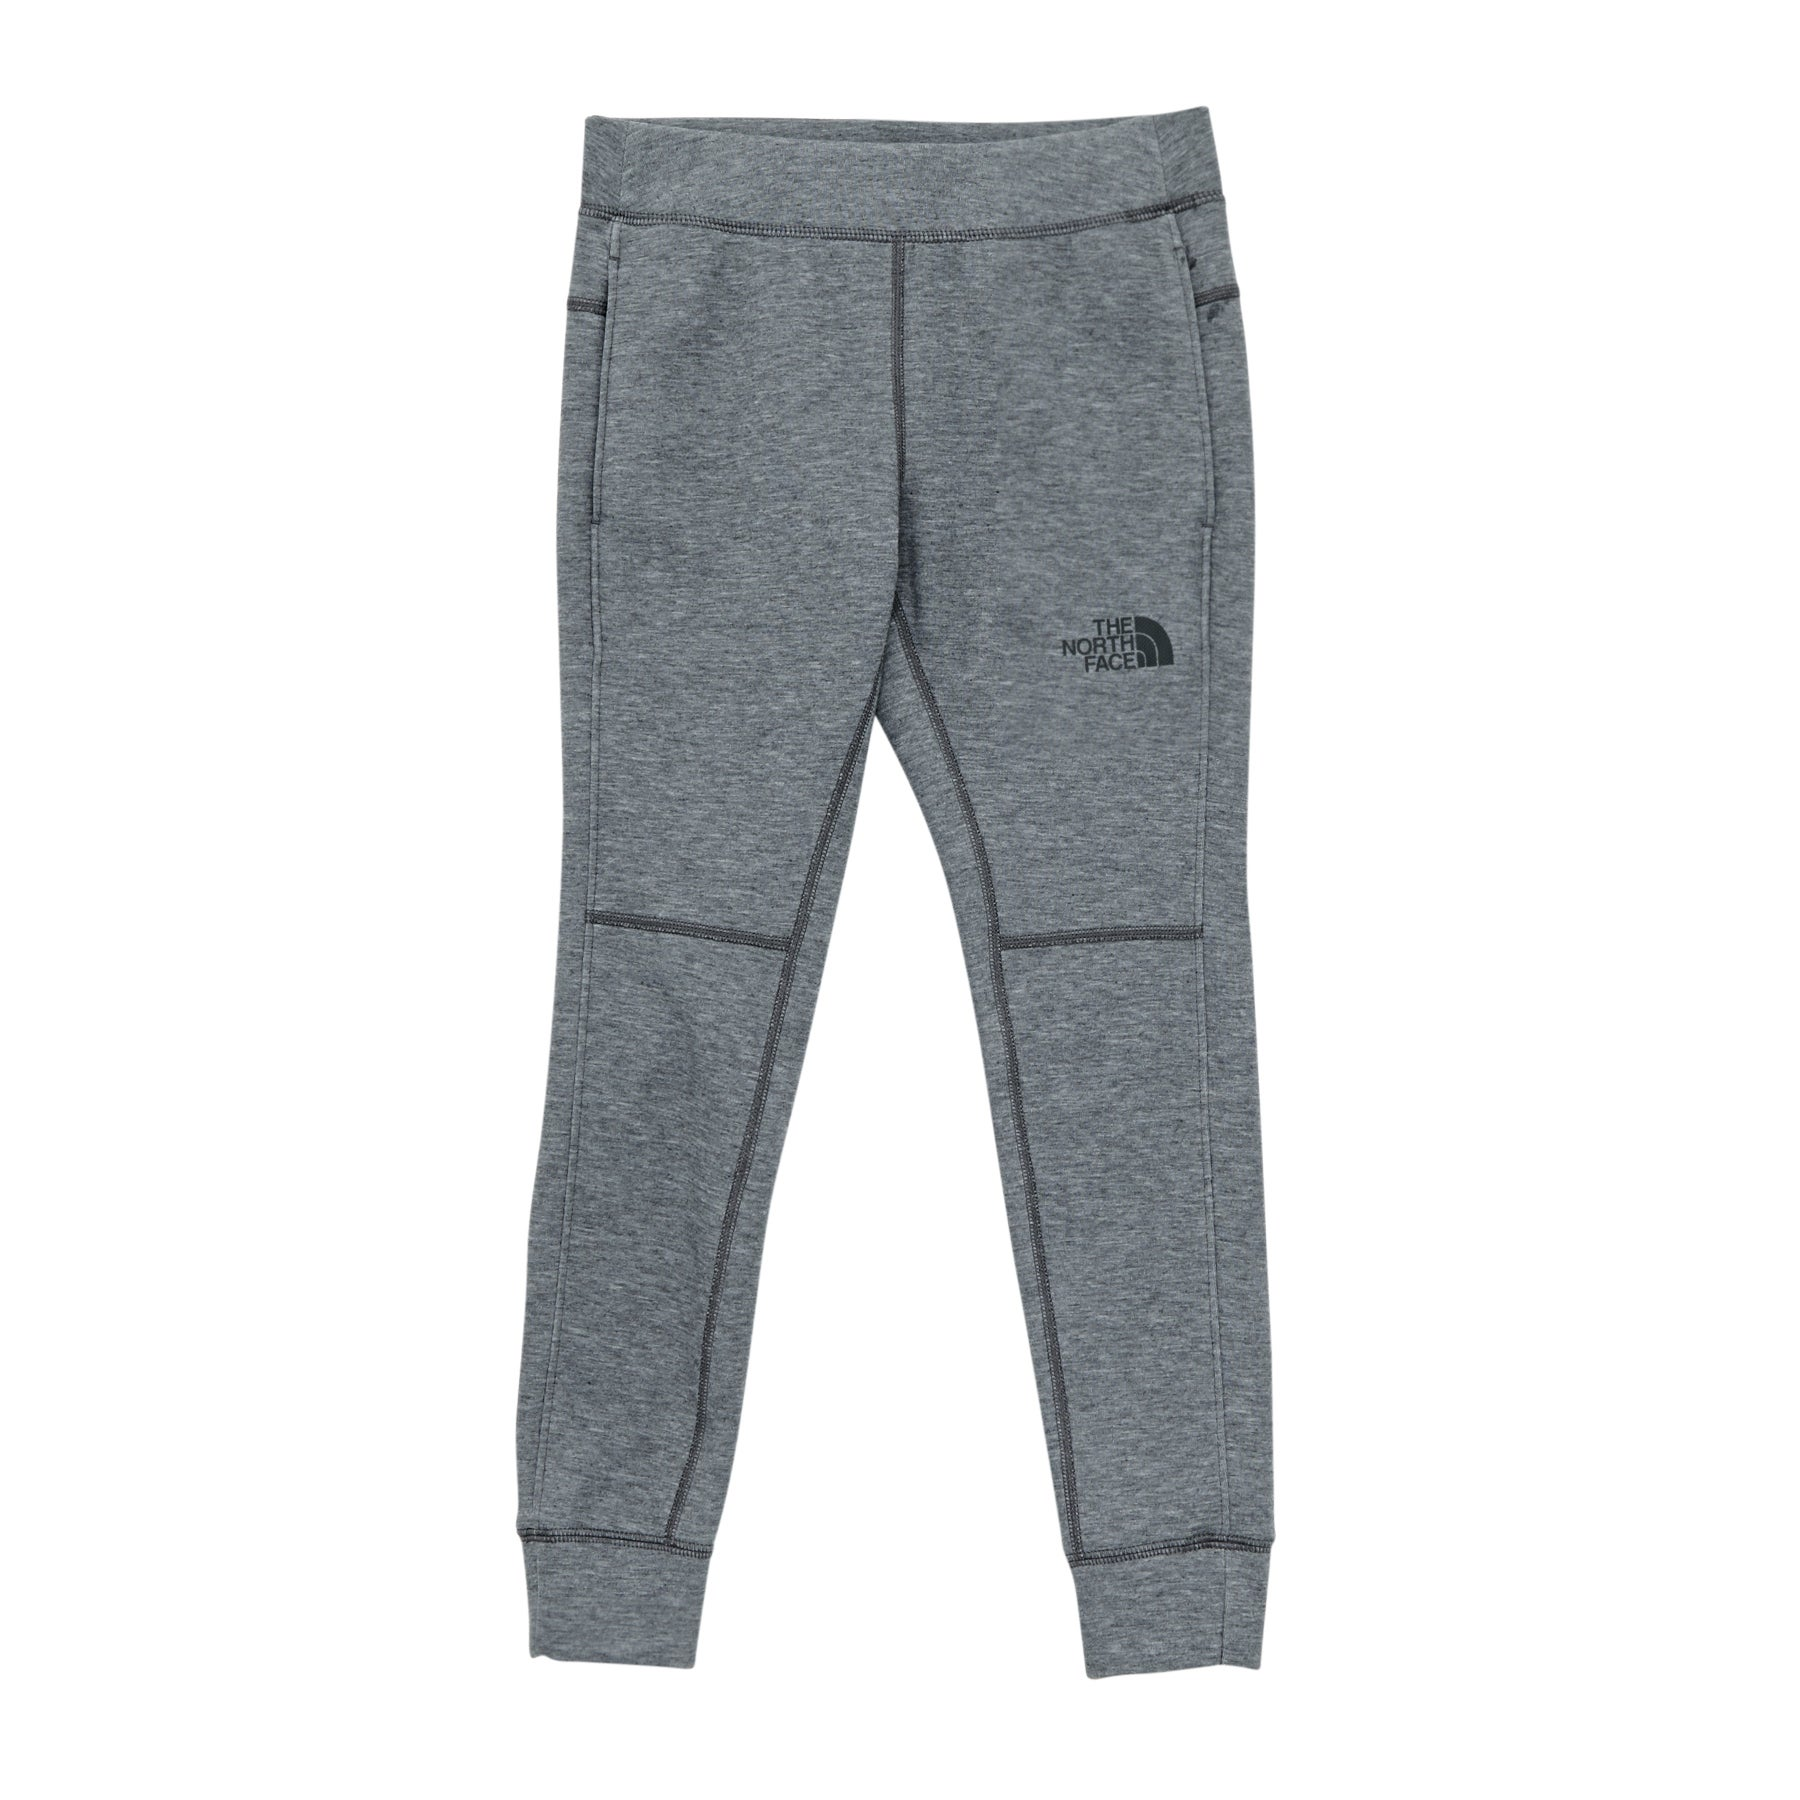 Pantalons de Jogging North Face Slacker - TNF Medium Grey Heather